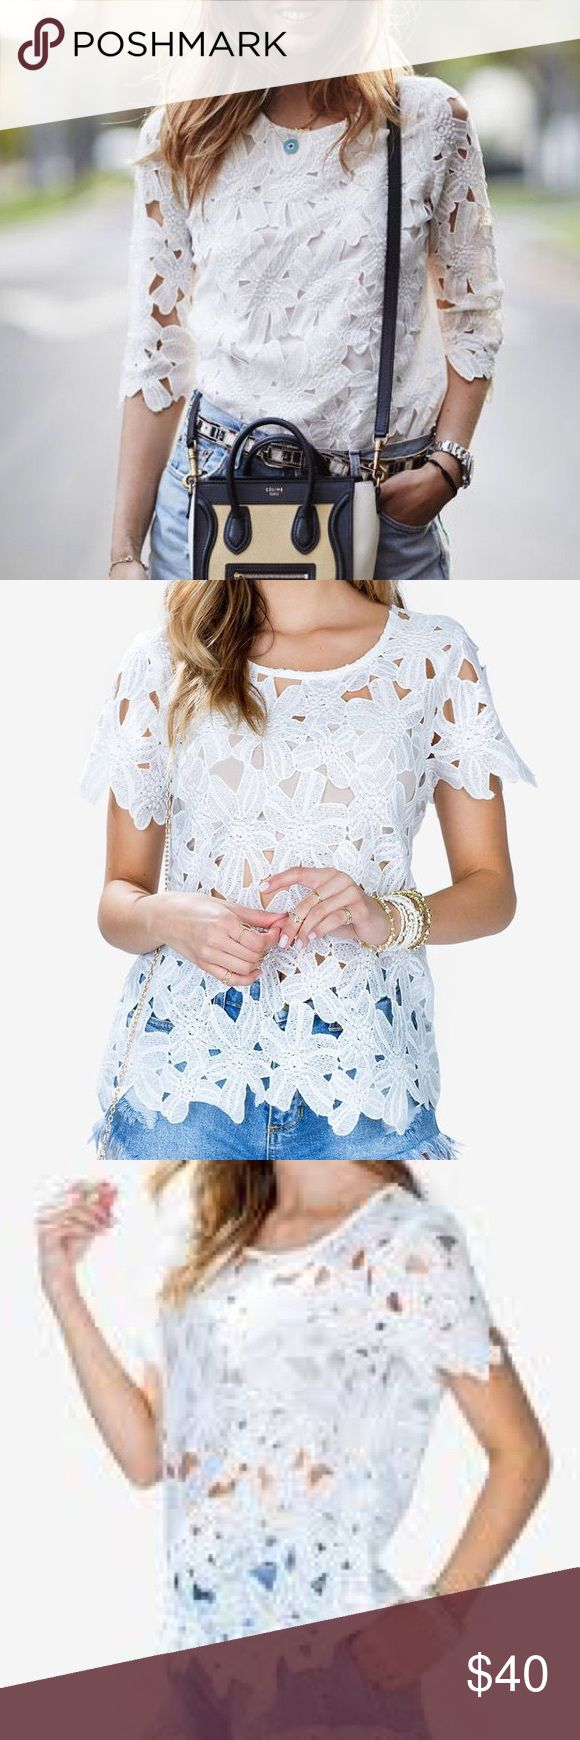 White Crochet Sheer Floral Short Sleeve Top White Floral Crochet Short Sleeve Top with Scalloped Edges  Sheer Crew neck Short sleeves Crochet construction Scalloped finished edges  60% cotton, 40% polyester Dry clean only  * Brand New Without Tags Tops Tees - Short Sleeve